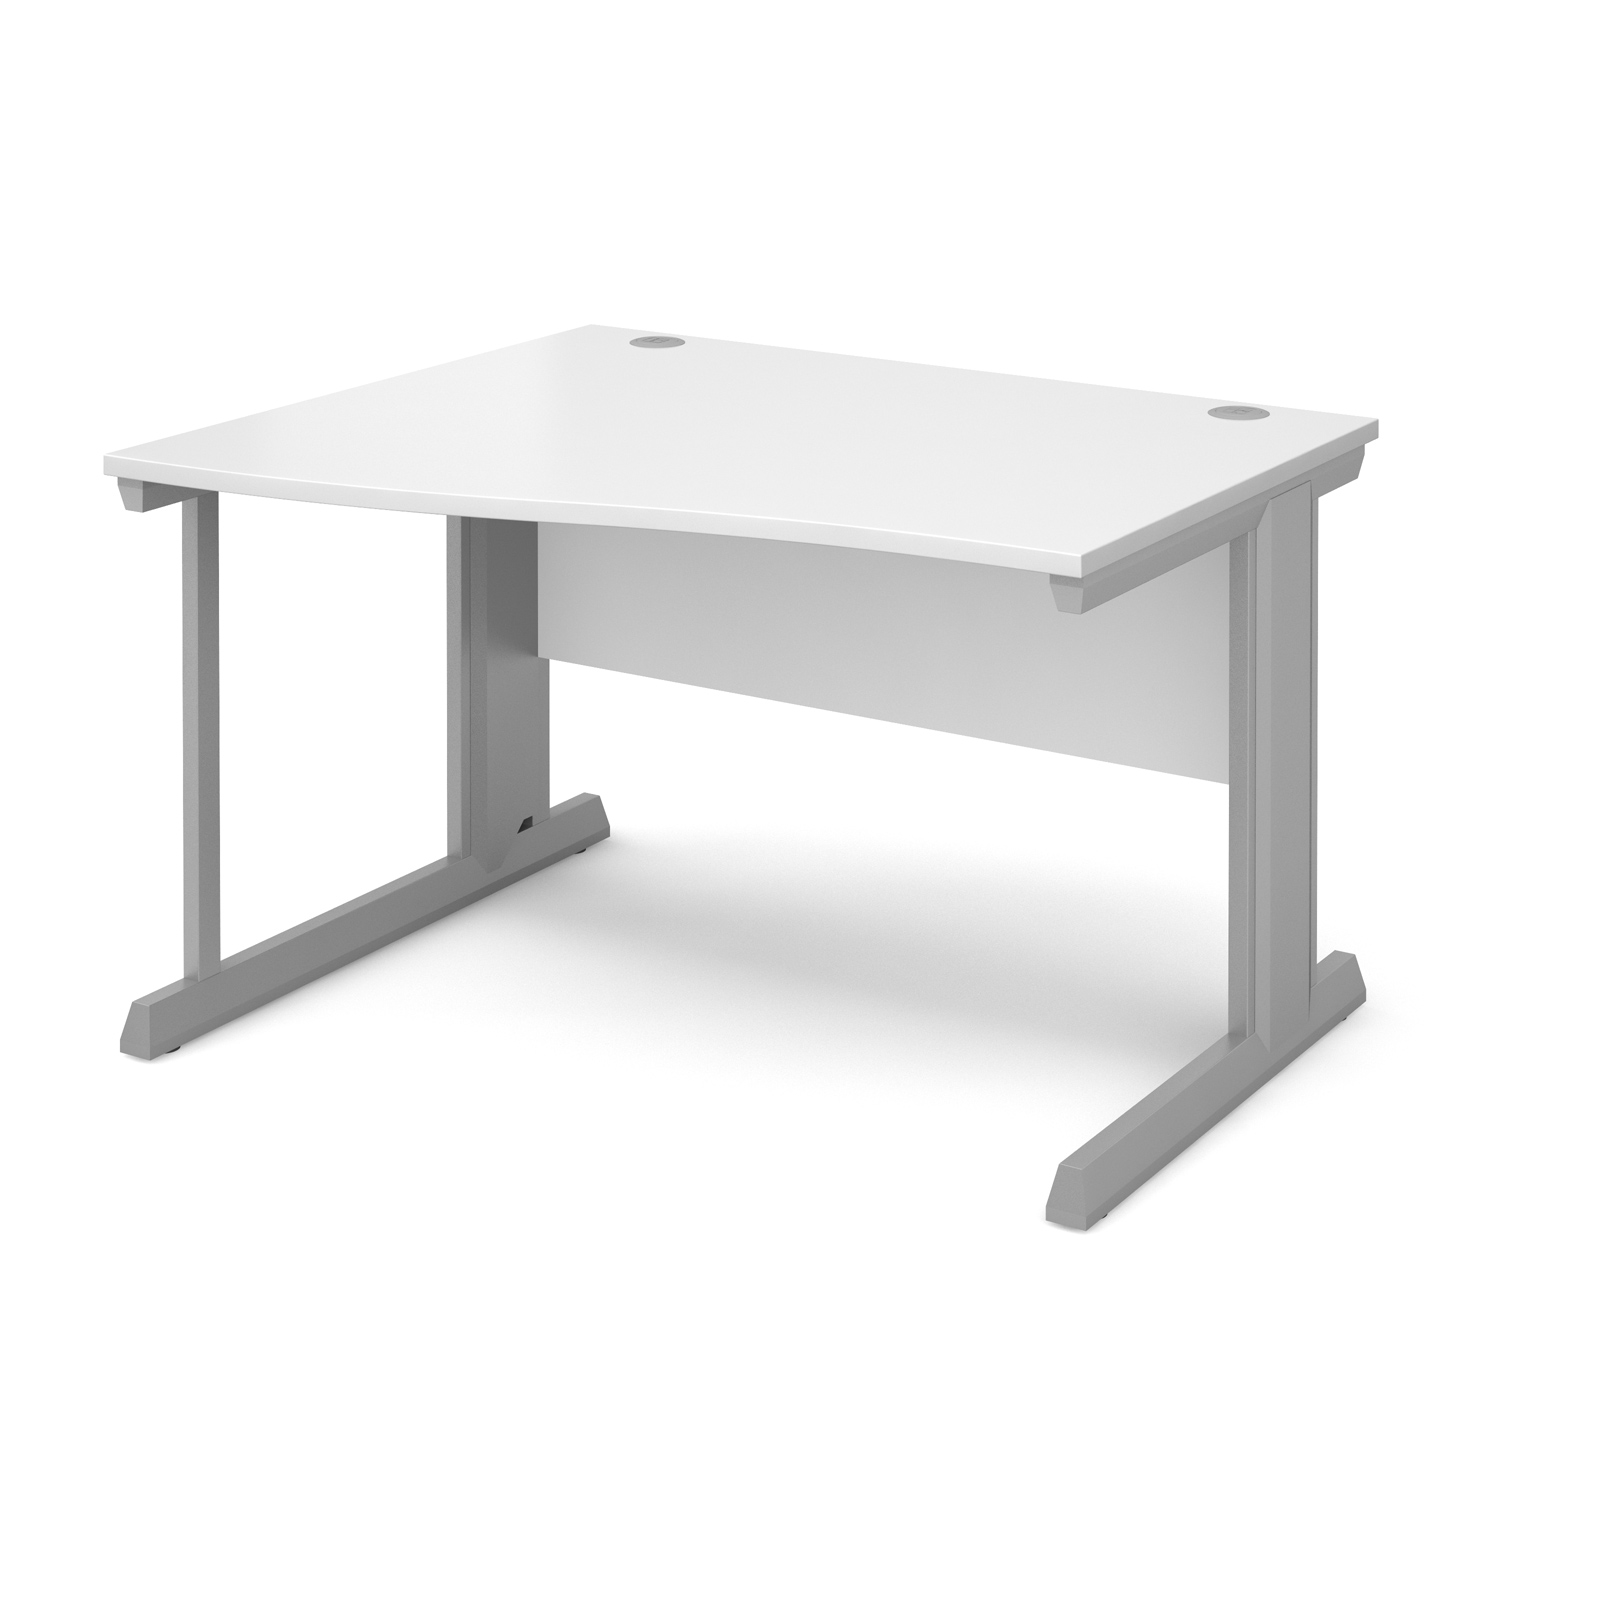 Compare prices for Vivo Left Hand Wave Desk 1200mm - Silver Frame White Top